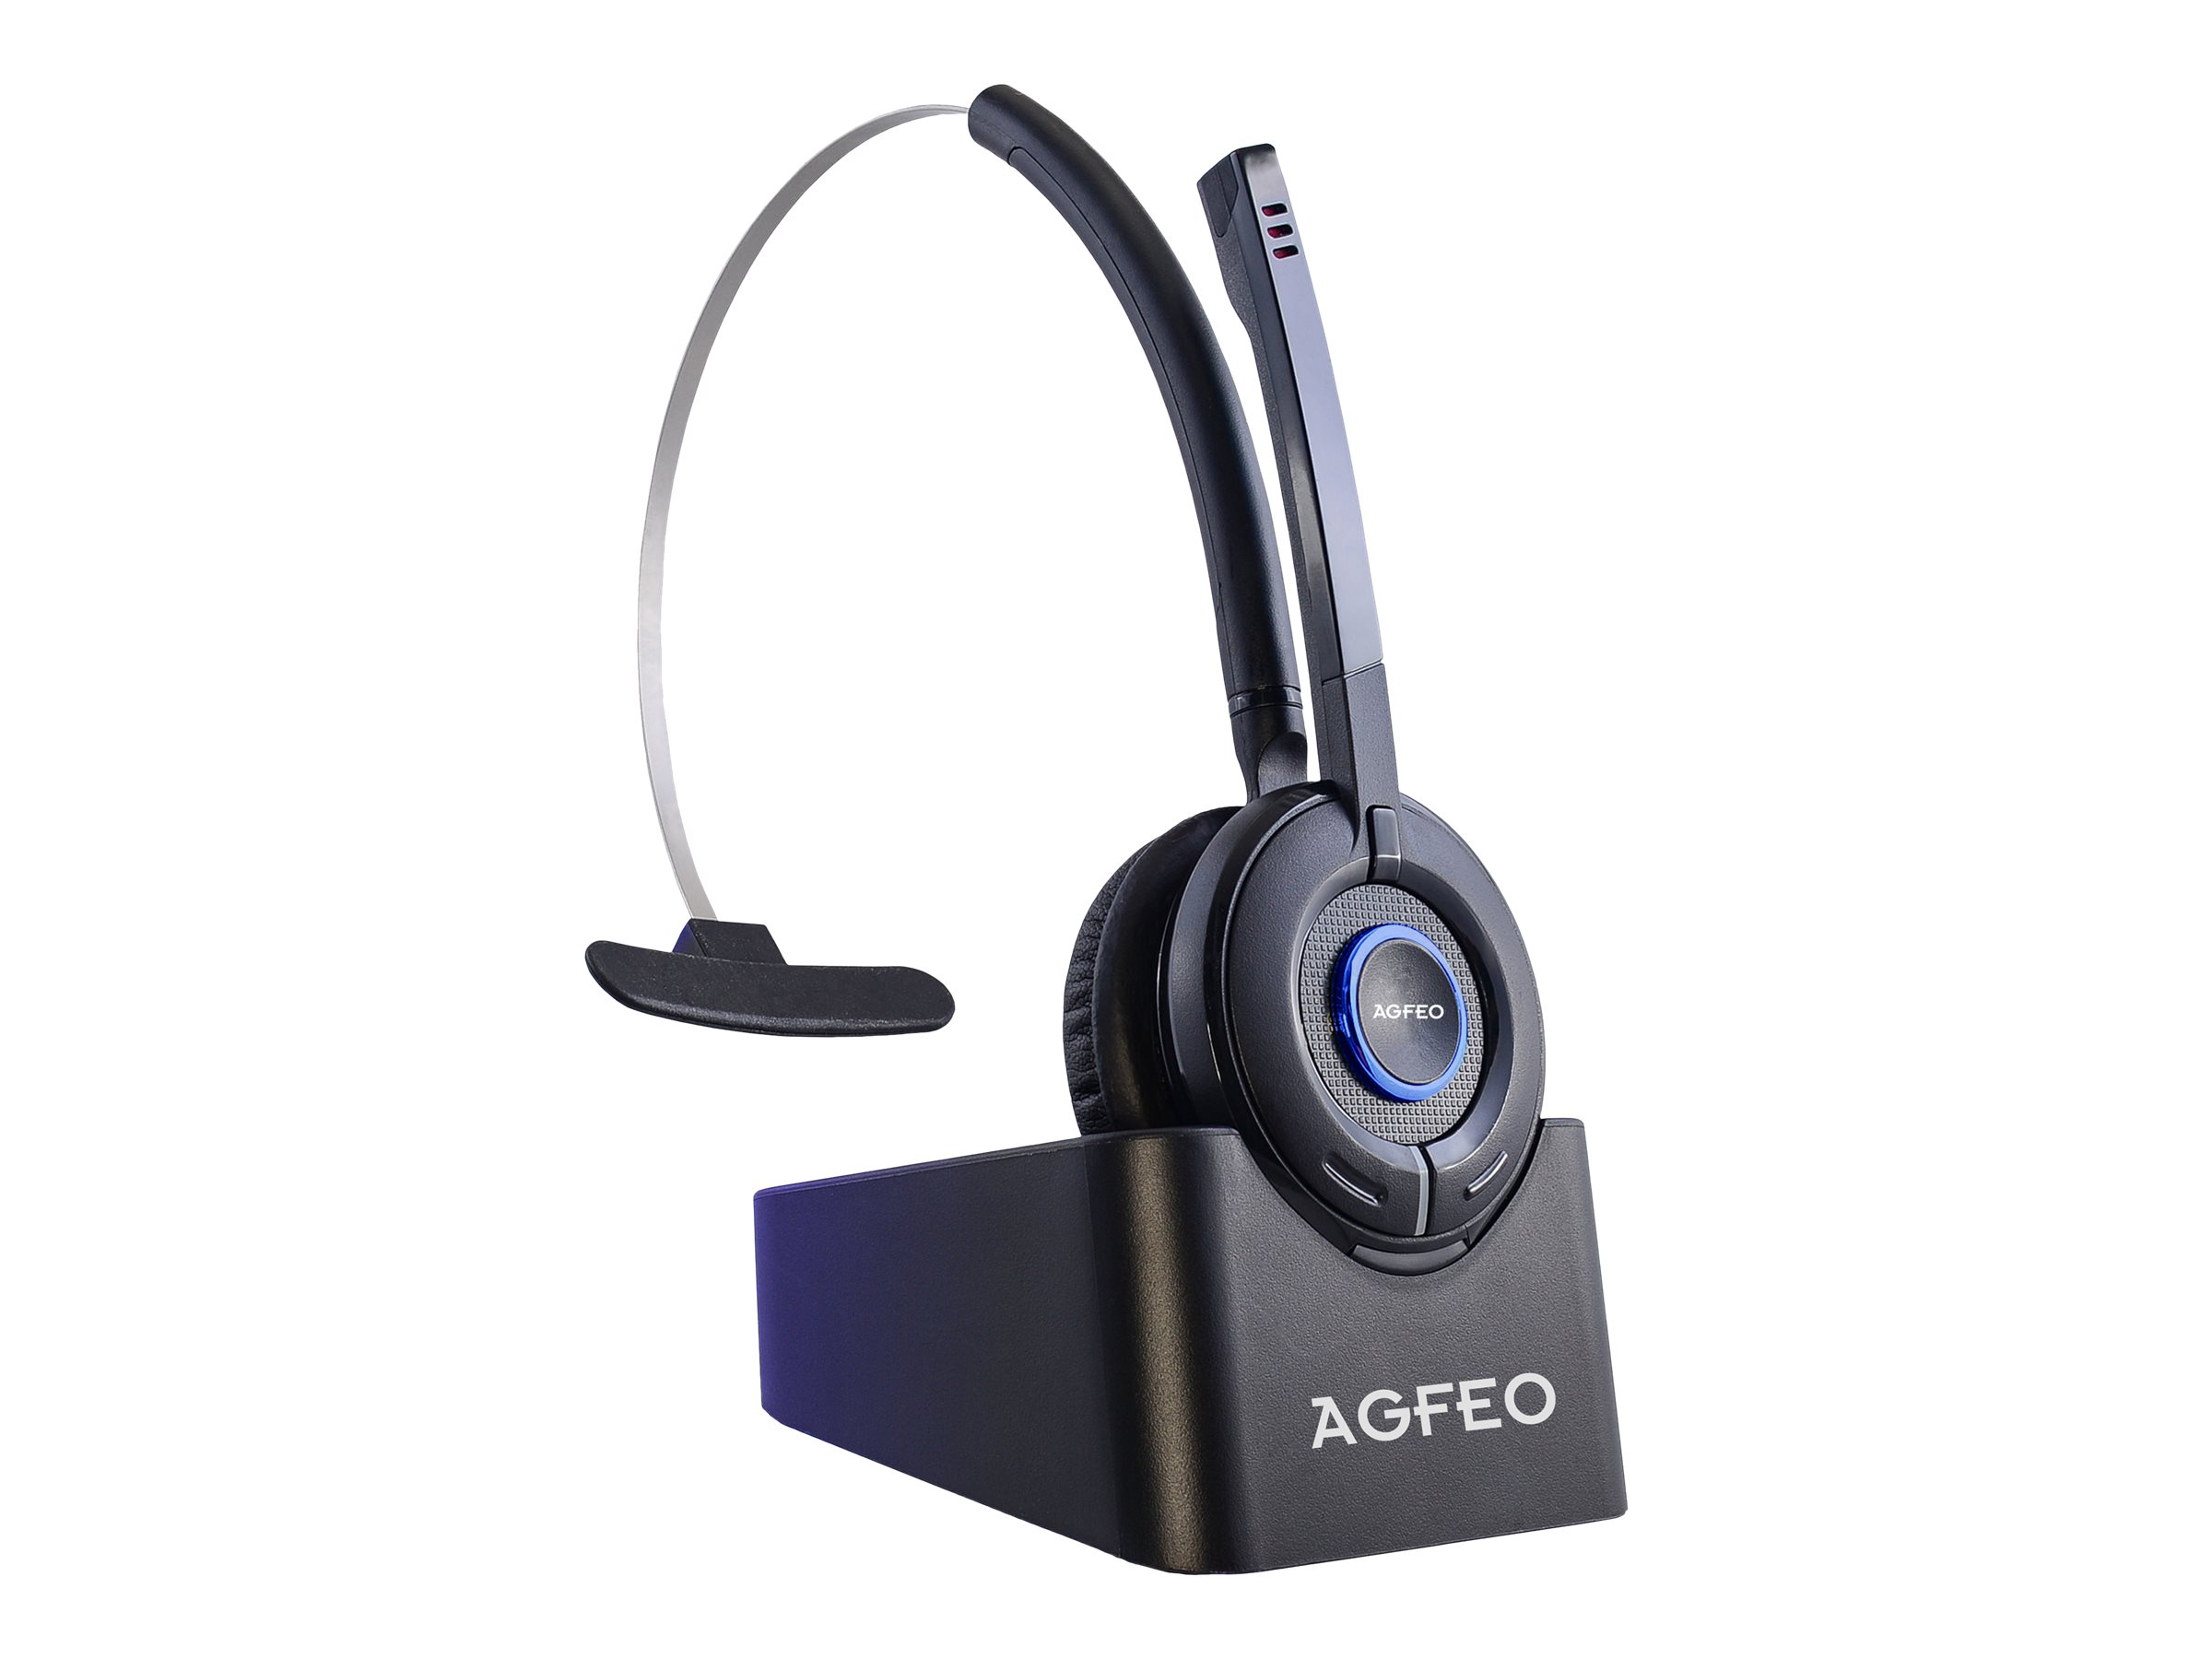 Agfeo DECT Headset IP 6101543